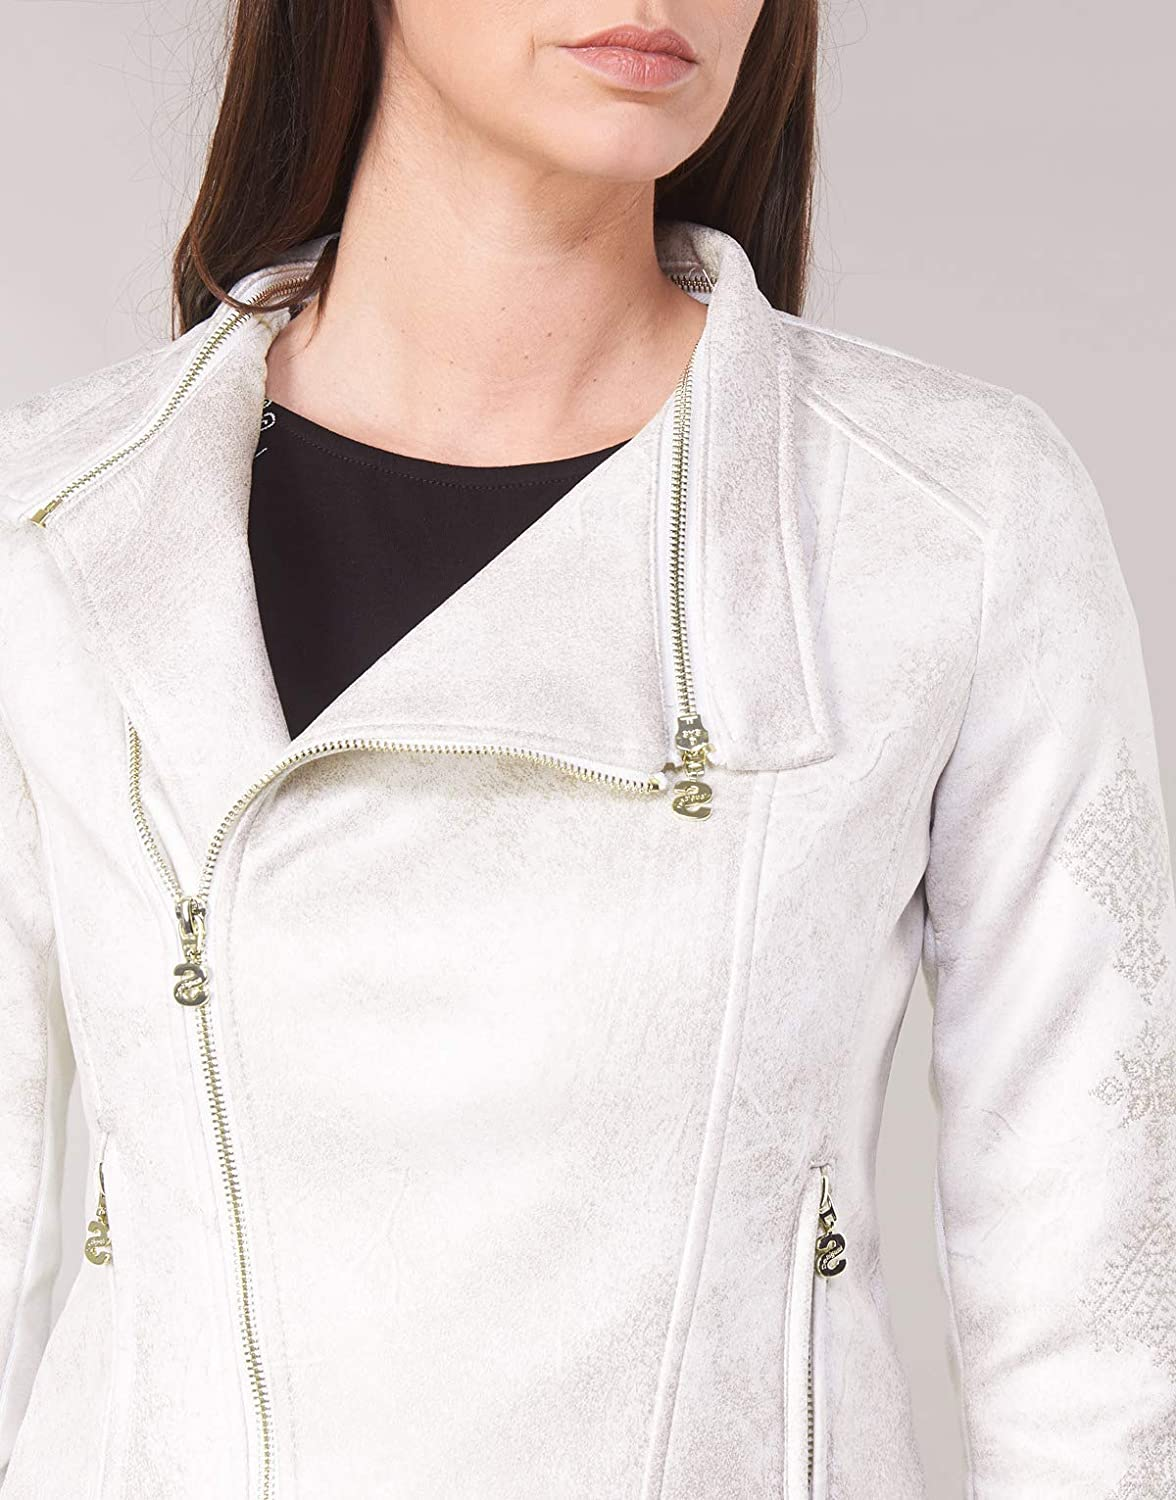 Desigual Marble Giacche Donne Bianco Giacca in Cuoio//Simil Cuoio